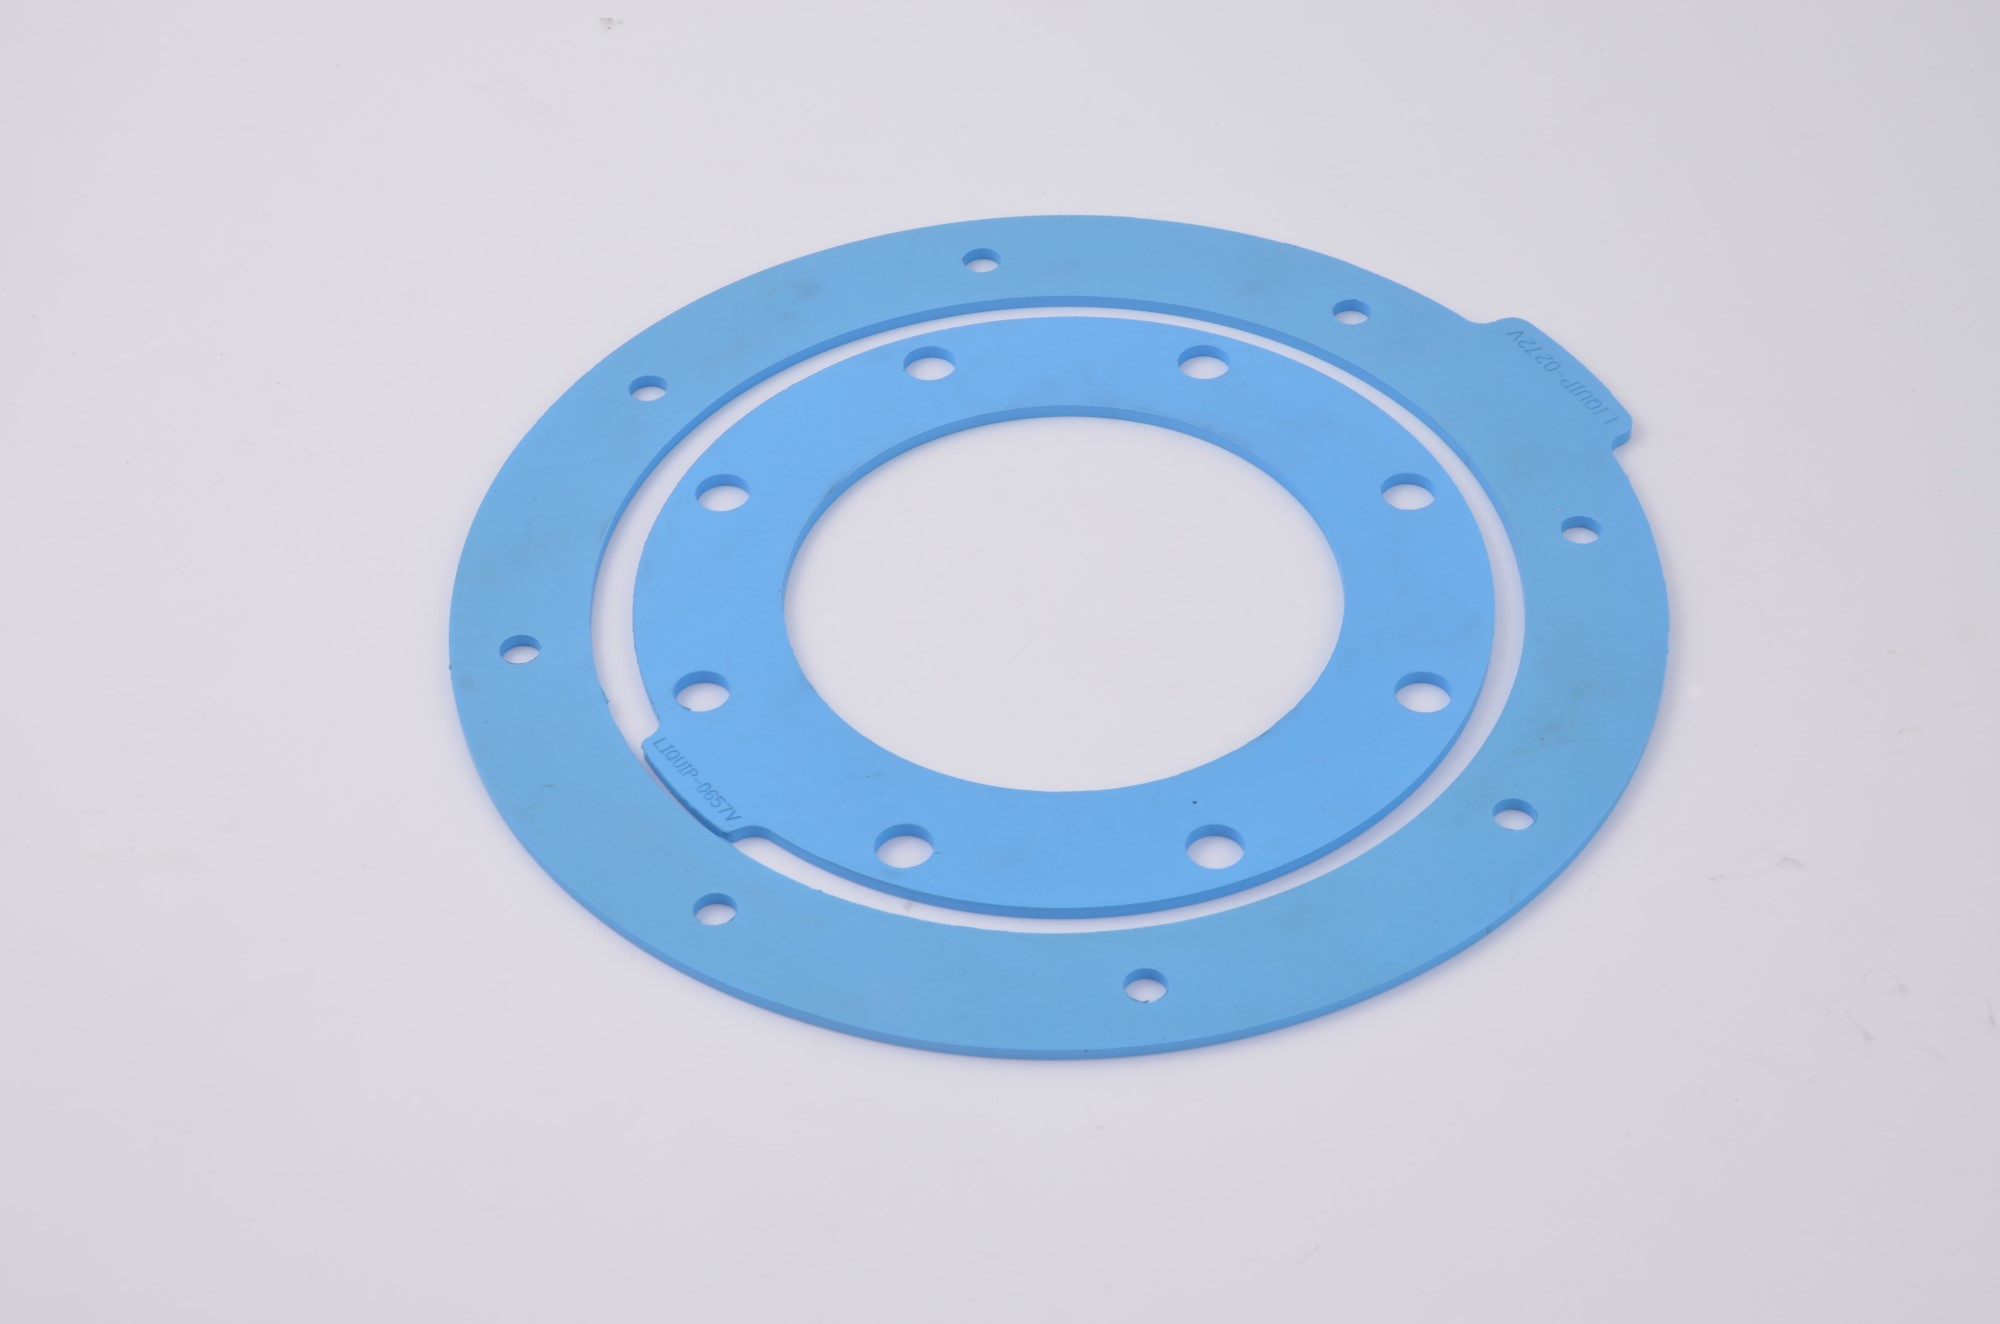 Plastic Parts Manufacturers, Plastic Parts Factory, Plastic Parts